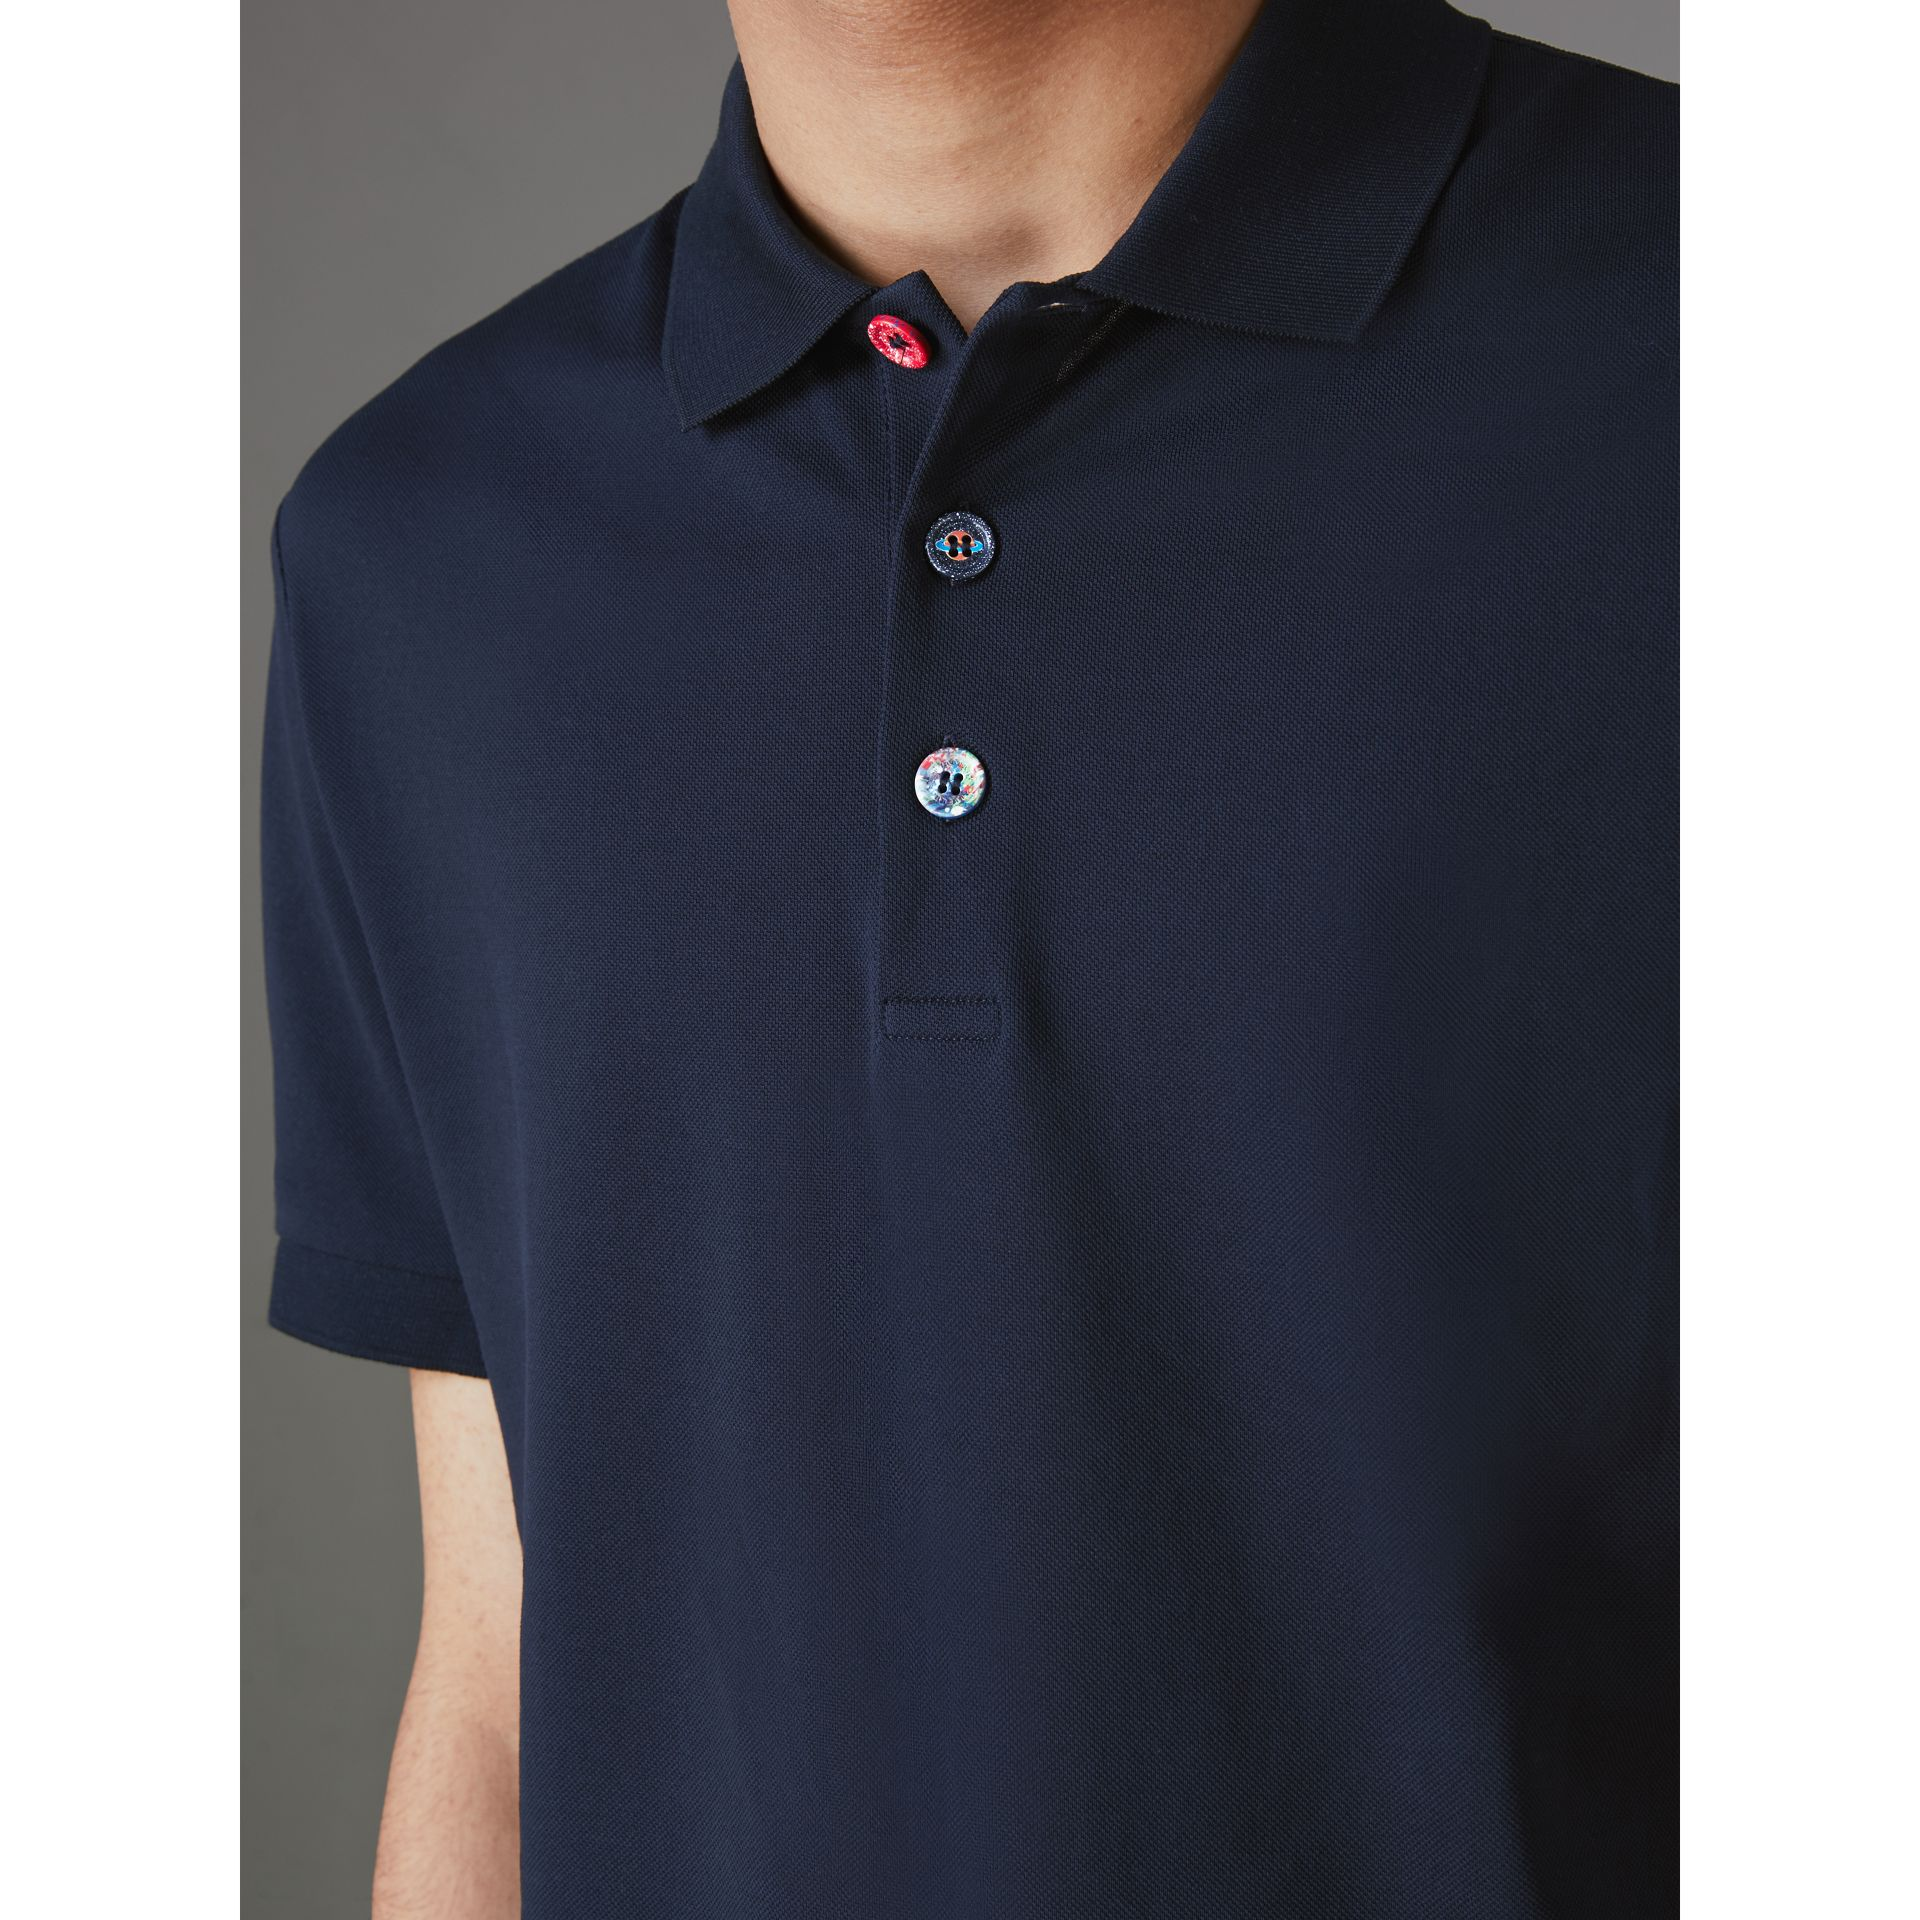 Painted Button Cotton Piqué Polo Shirt in Navy - Men | Burberry Canada - gallery image 1